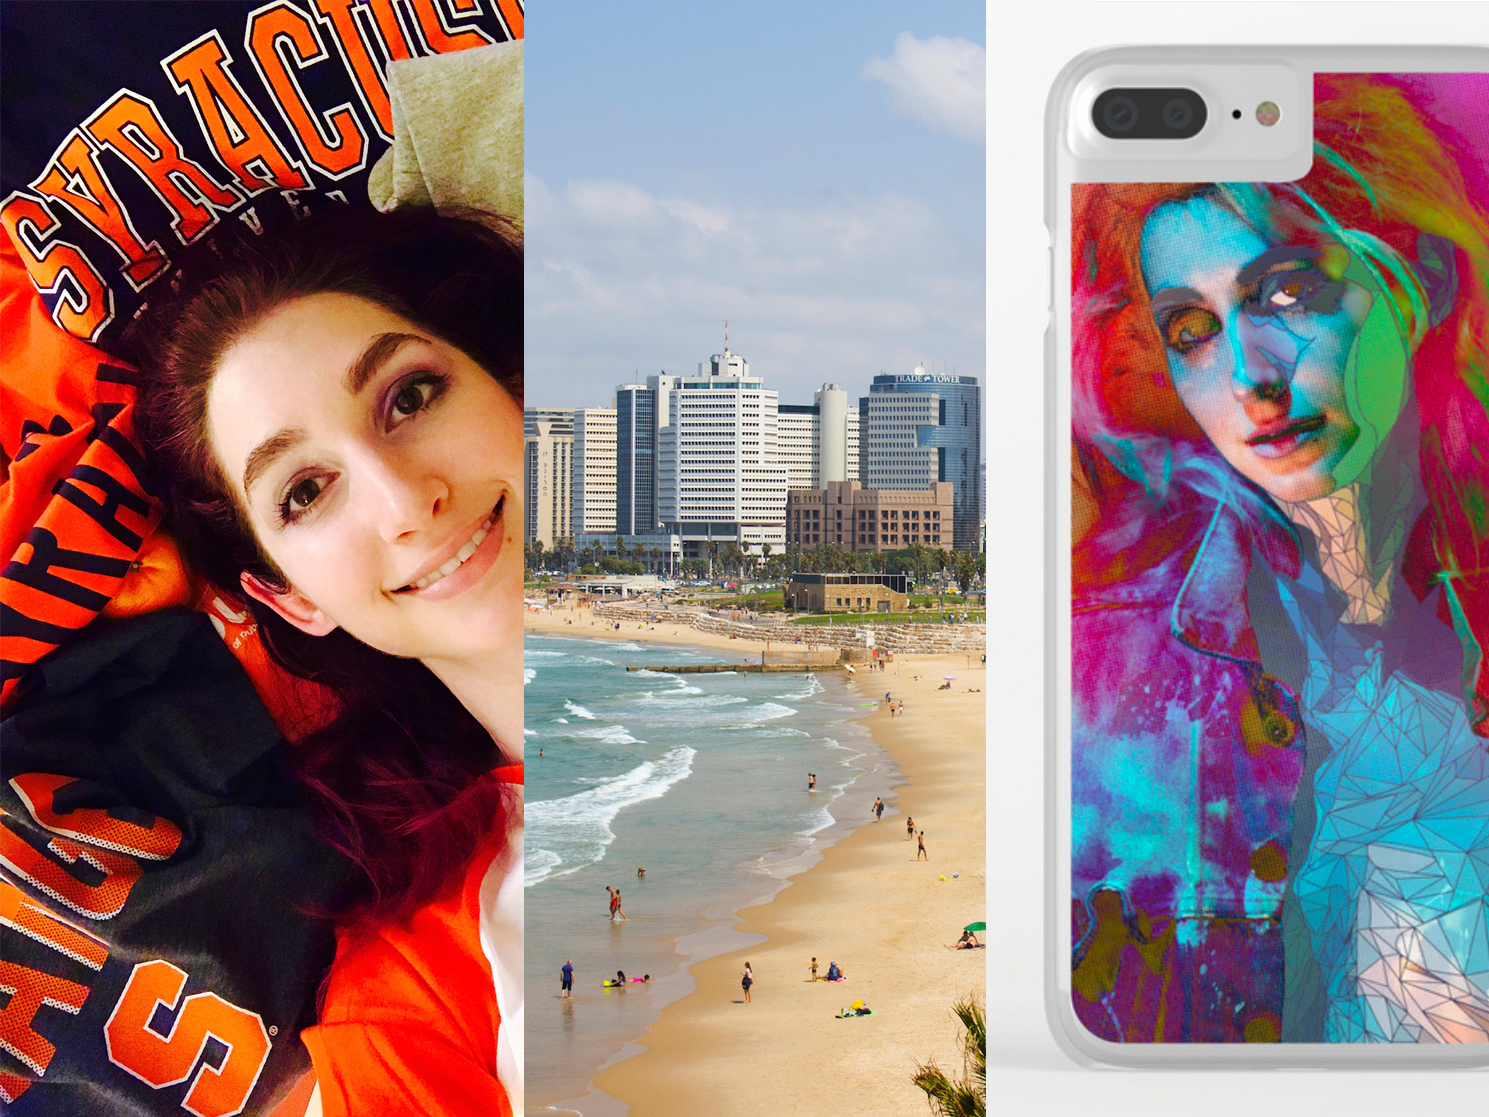 Geena Matuson's (@geenamatuson) 2017 Year In Review featuring her acceptance to Syracuse University's Newhouse School, travels to Israel, and her Society6 shop. See more @ https://thegirlmirage.com.